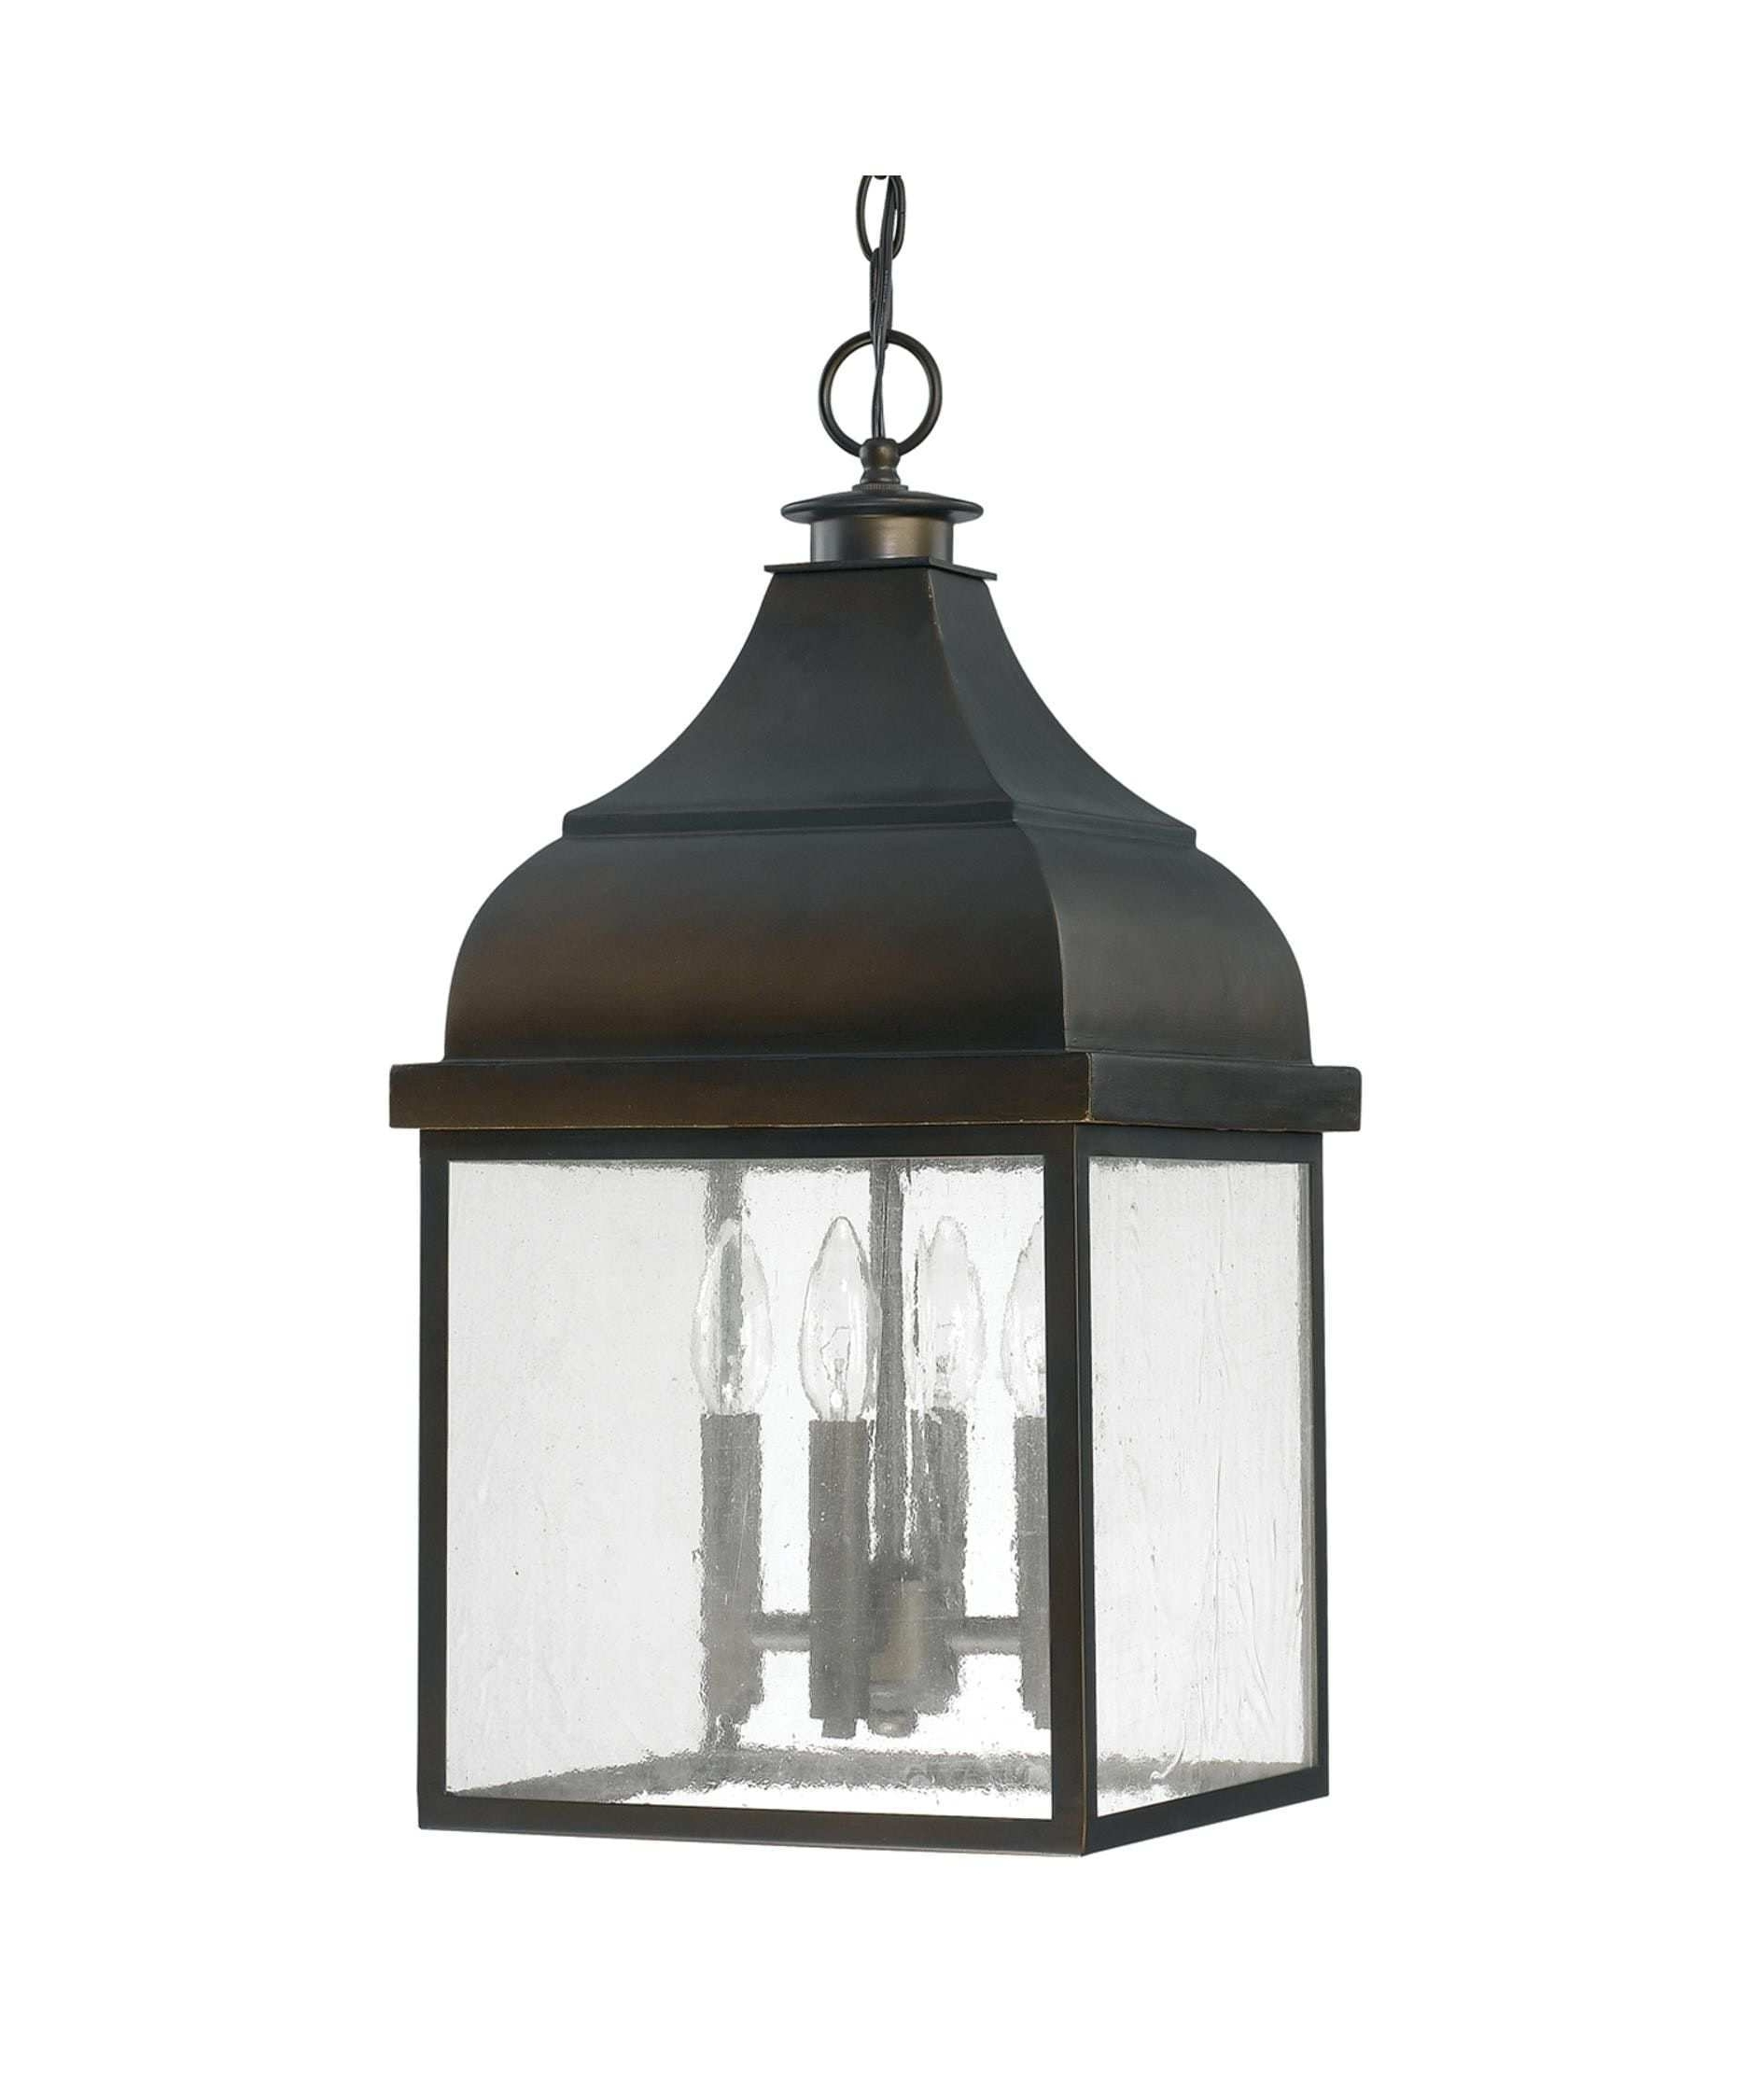 Most Recently Released Wayfair Ceiling Light Fixtures Beautiful Outdoor Hanging Light Throughout Garden Porch Light Fixtures At Wayfair (View 8 of 20)